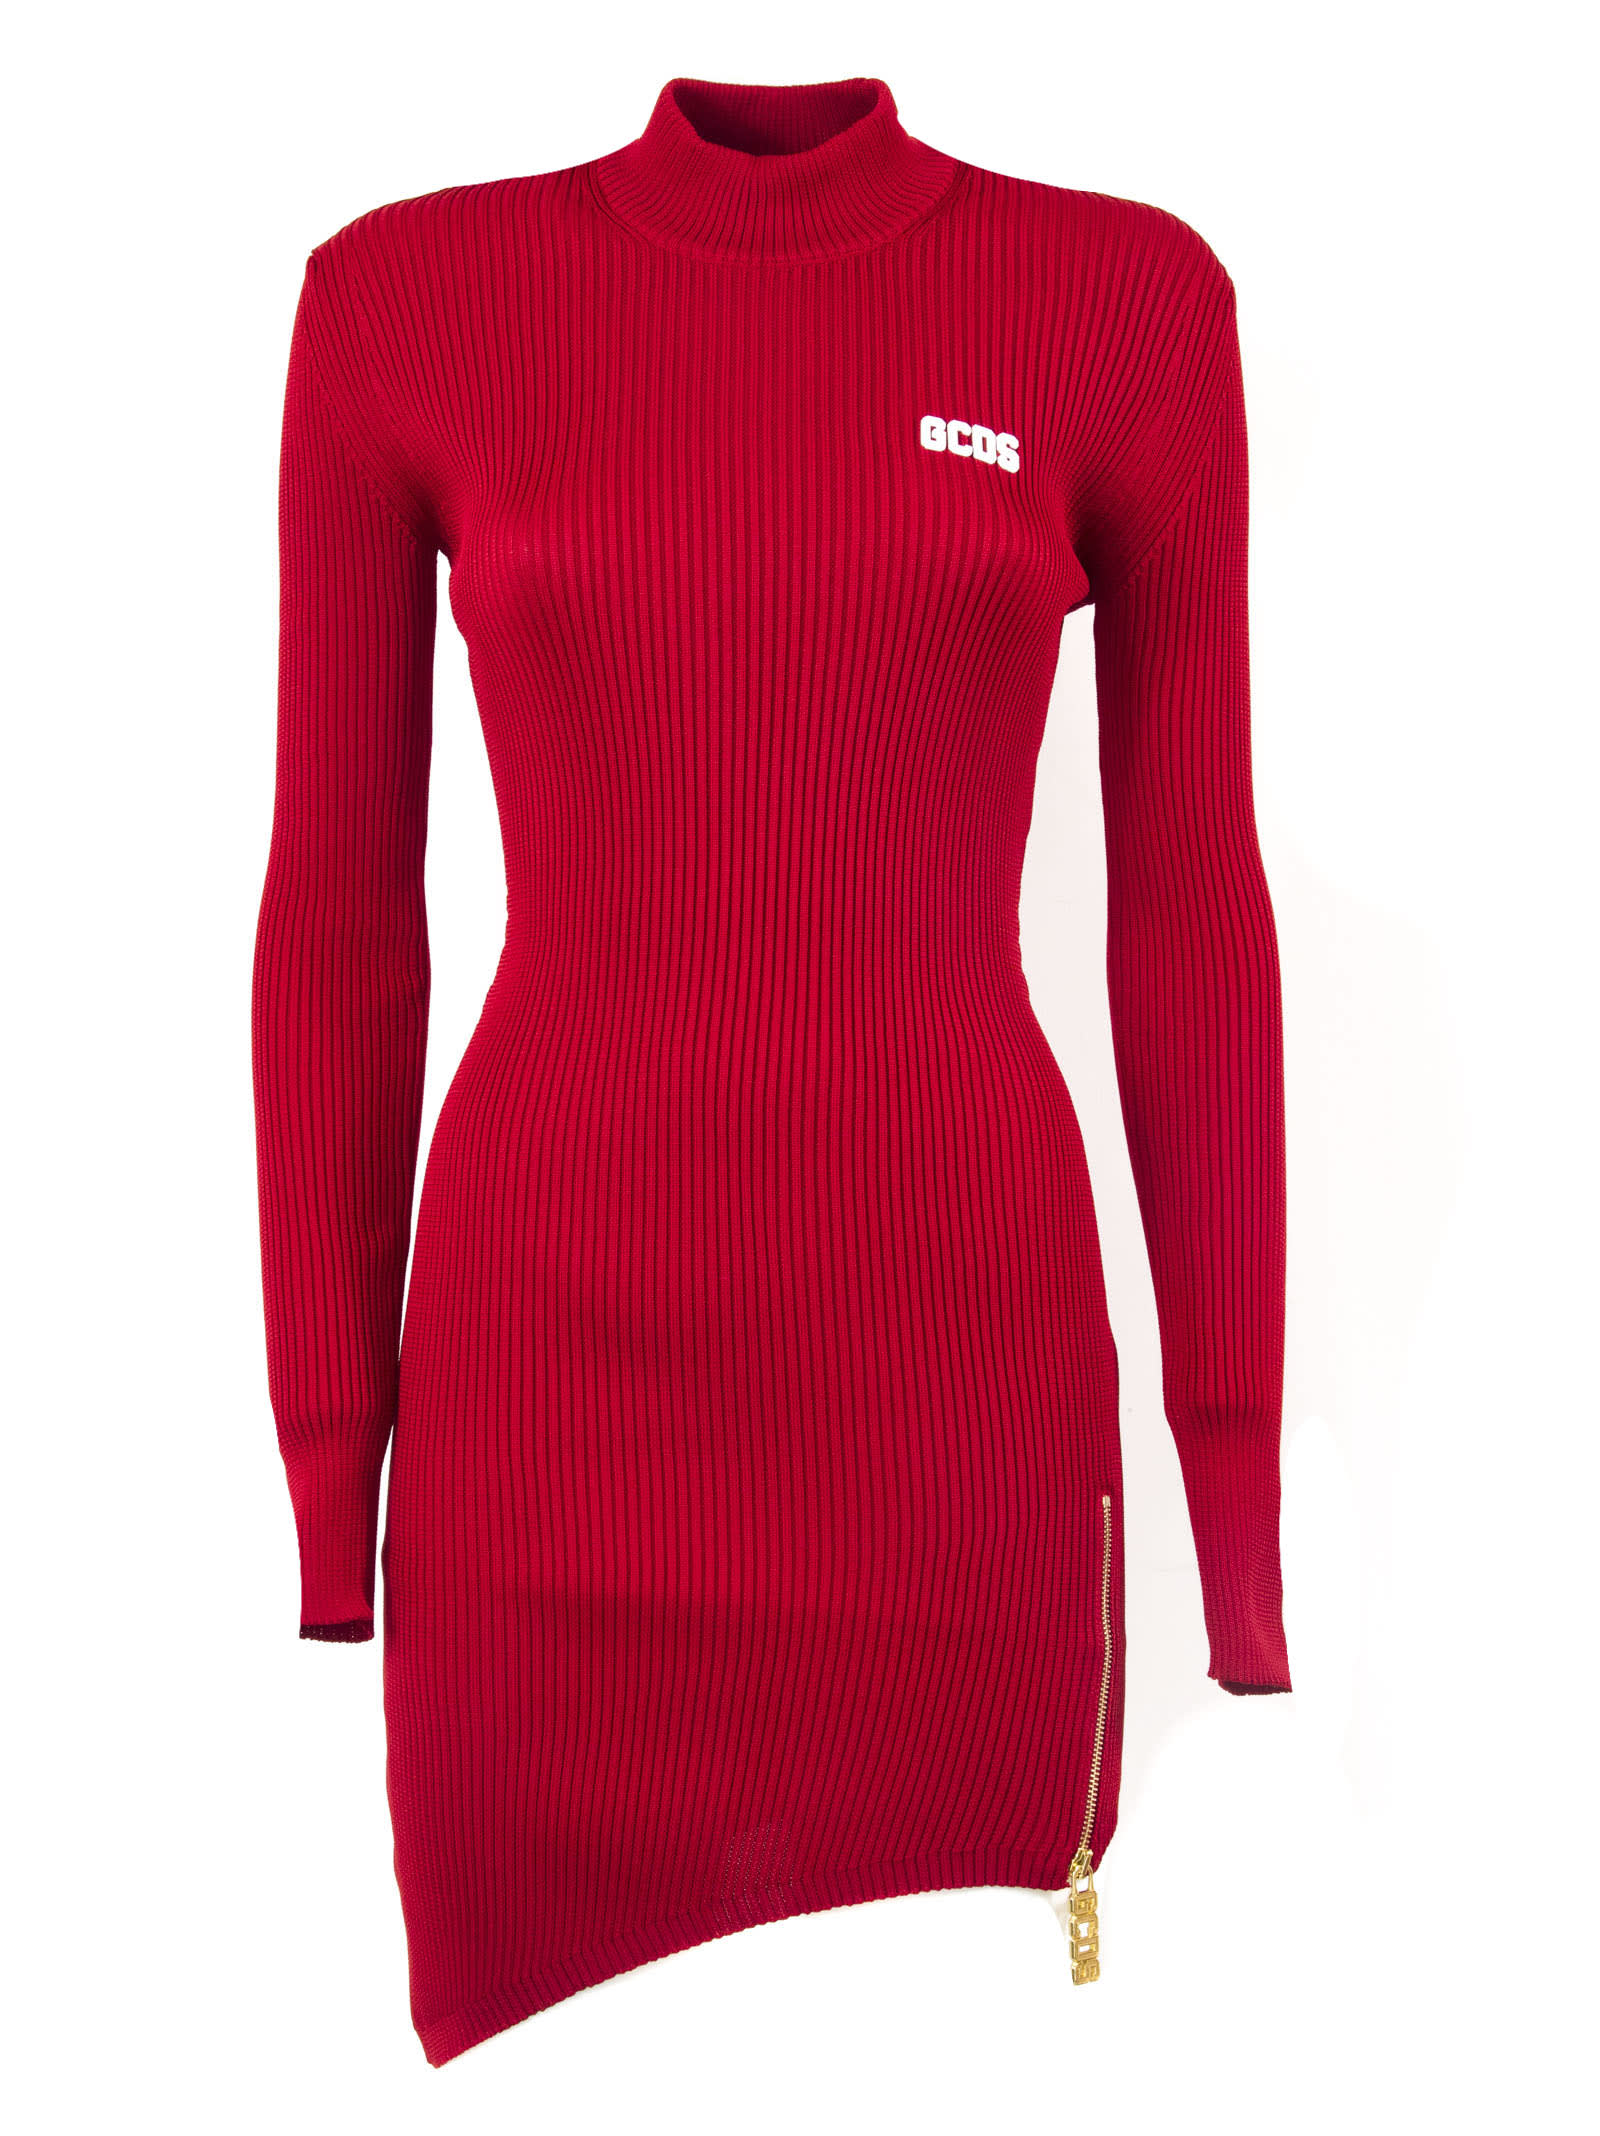 GCDS Red Ribbed Sweater Dress